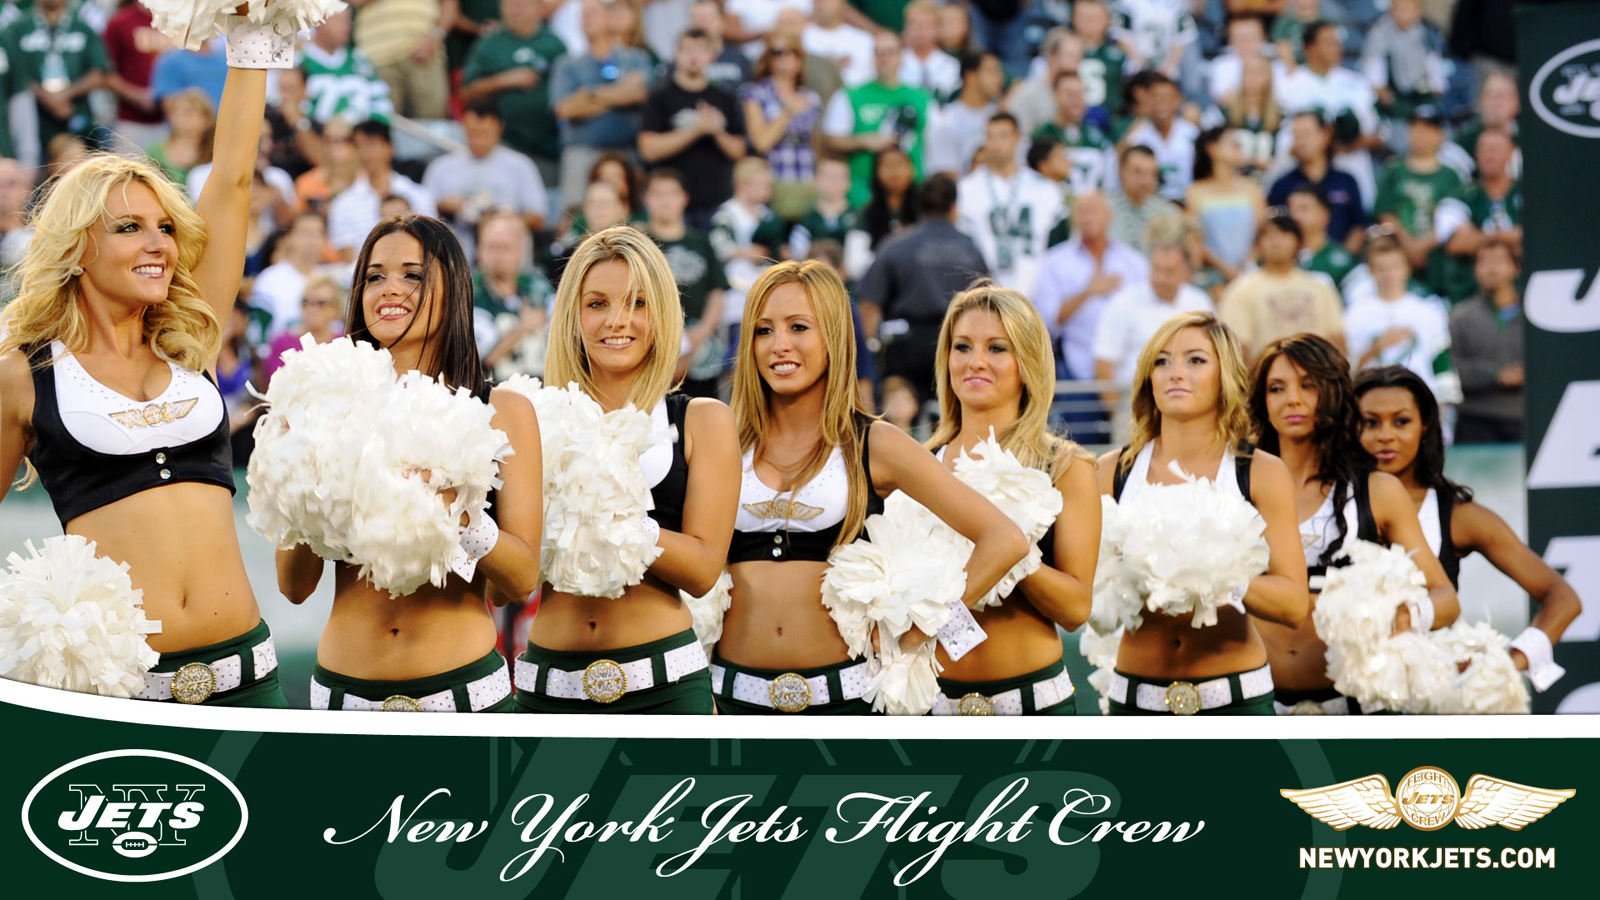 http://1.bp.blogspot.com/-bNOfxaVQdzk/UAHsp-xBjnI/AAAAAAAACvs/98bmoNssN1M/s1600/New_York_Jets_Girls_Cheerleaders_NFL_HD_Desktop_Wallpaper.jpg